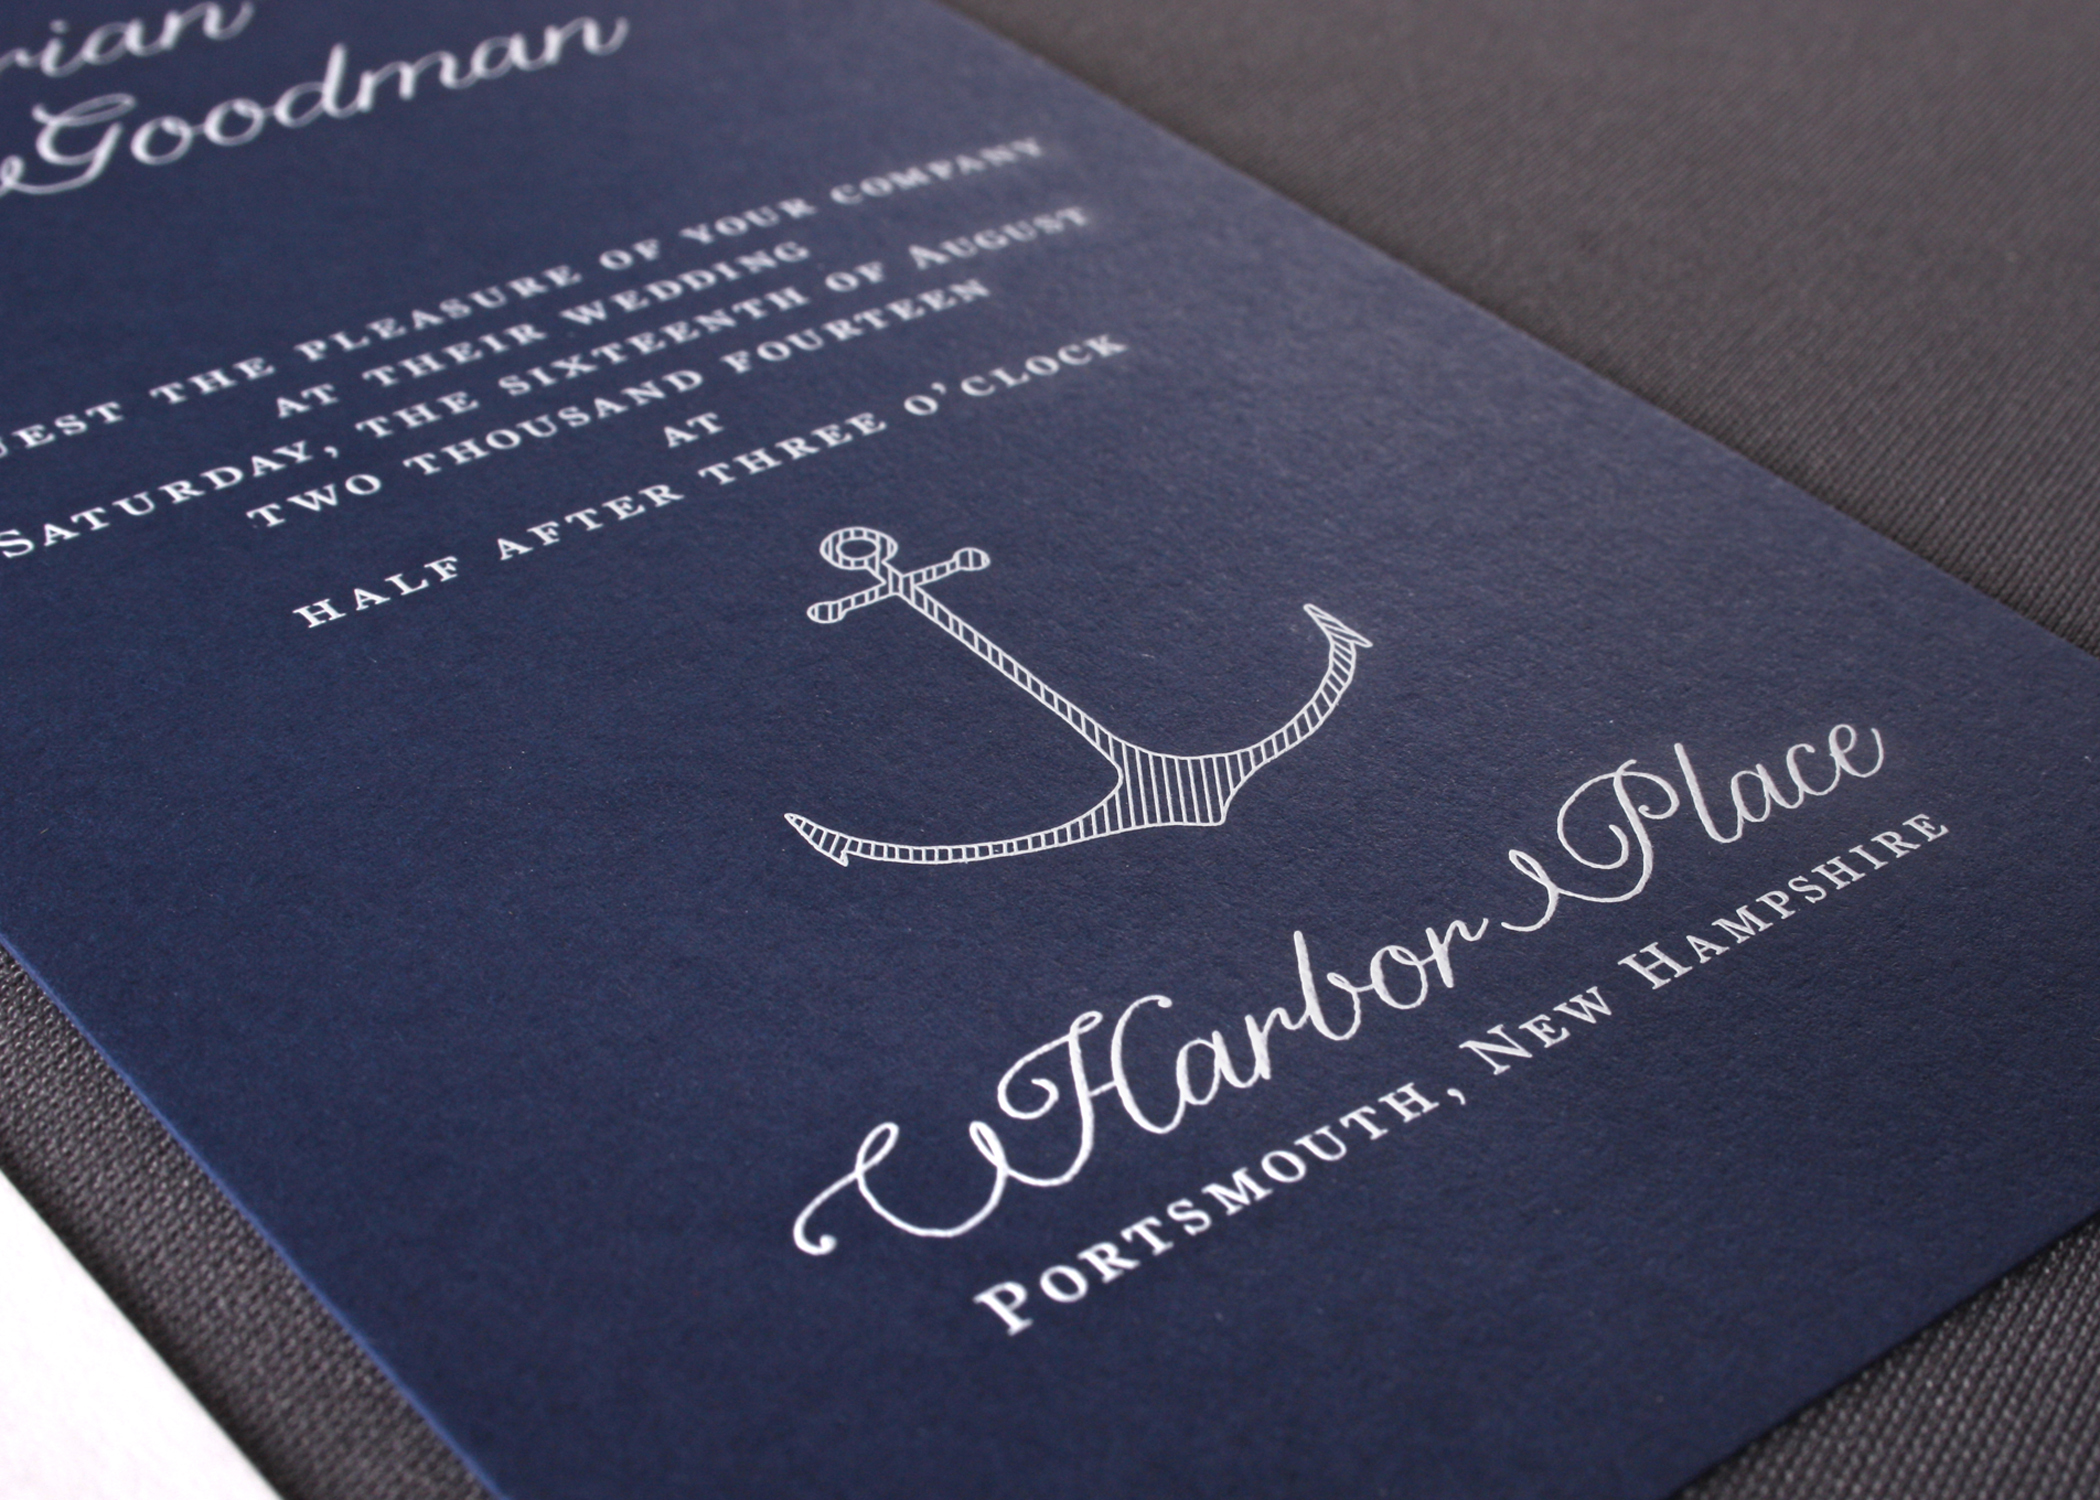 p74-75_89-62763 - dark blue card with white envelope 02.jpg